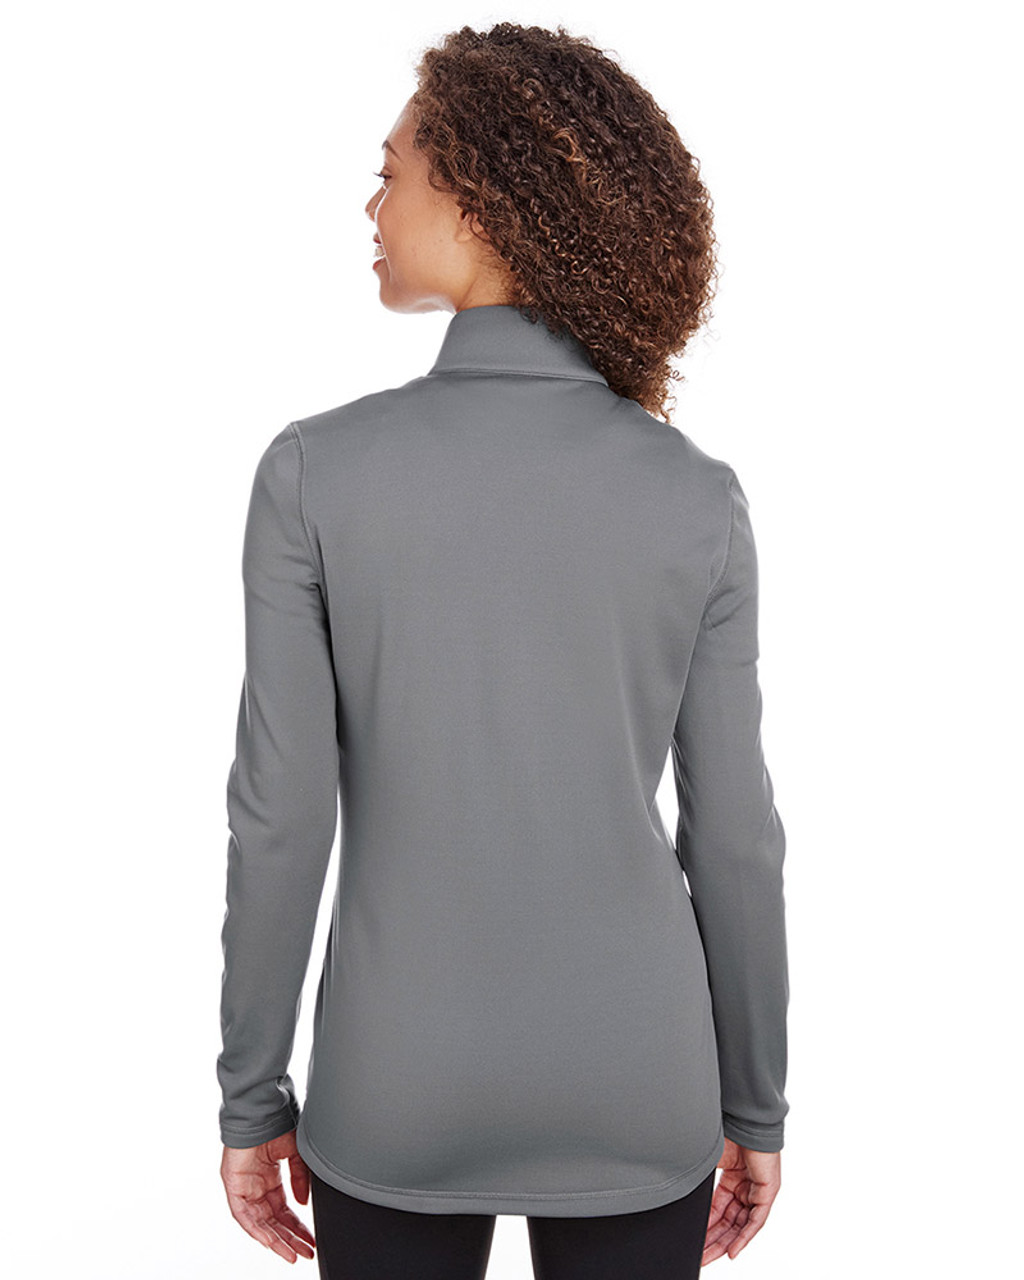 Quiet Shade - back, 597160 Puma Golf Ladies' Fairway Full-Zip Sweatshirt | Blankclothing.ca